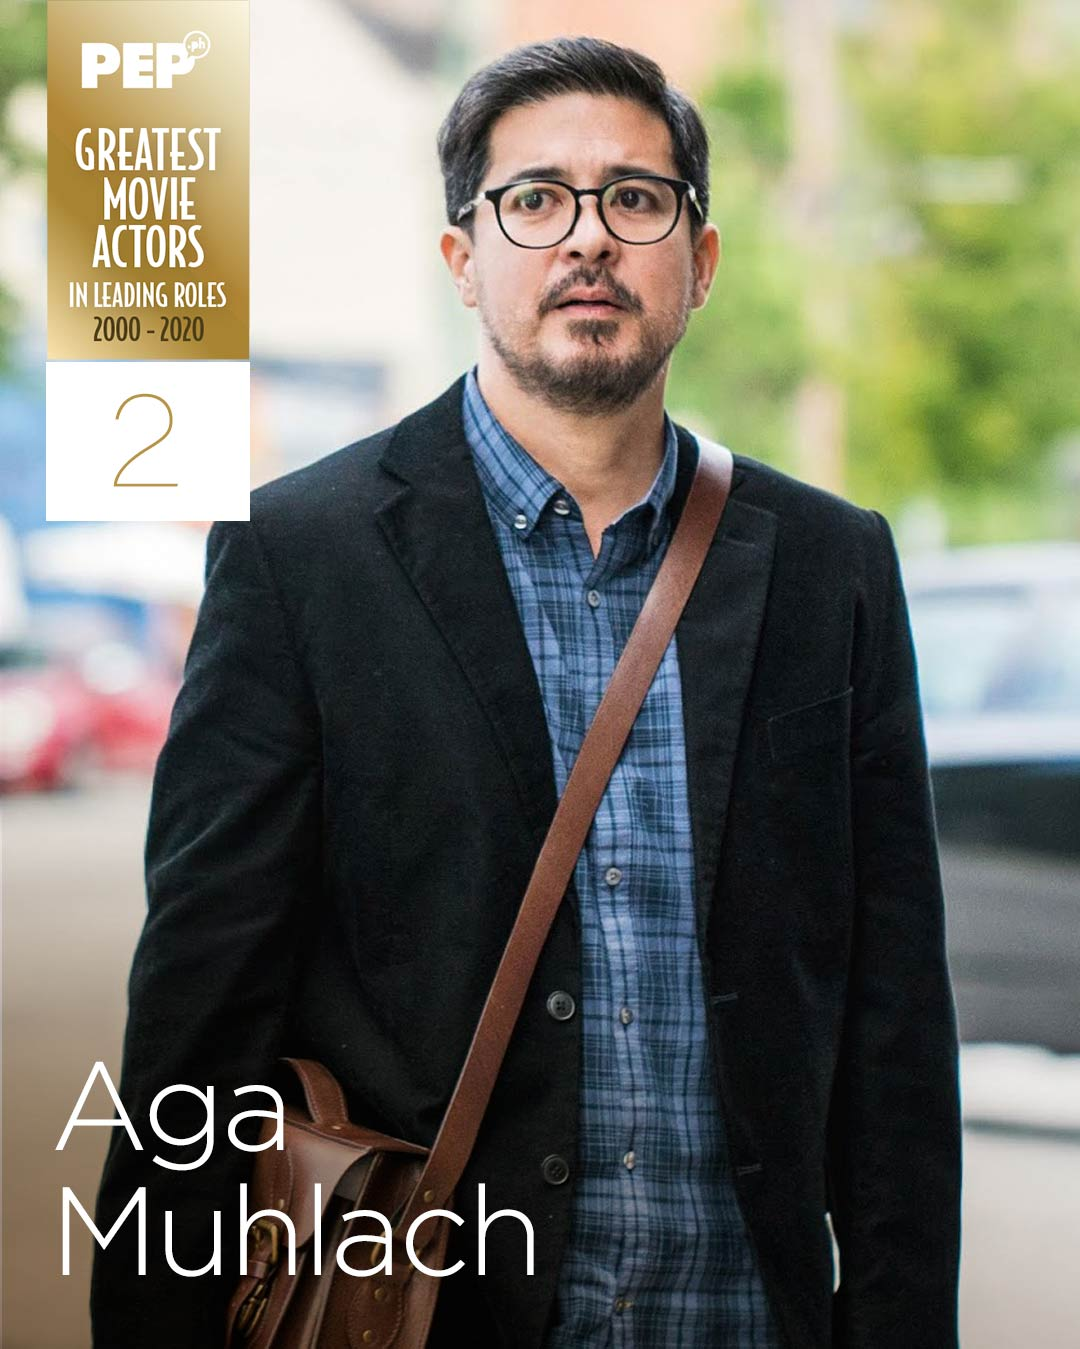 Aga Muhlach, 15 Greatest Movie Actors in Leading Roles